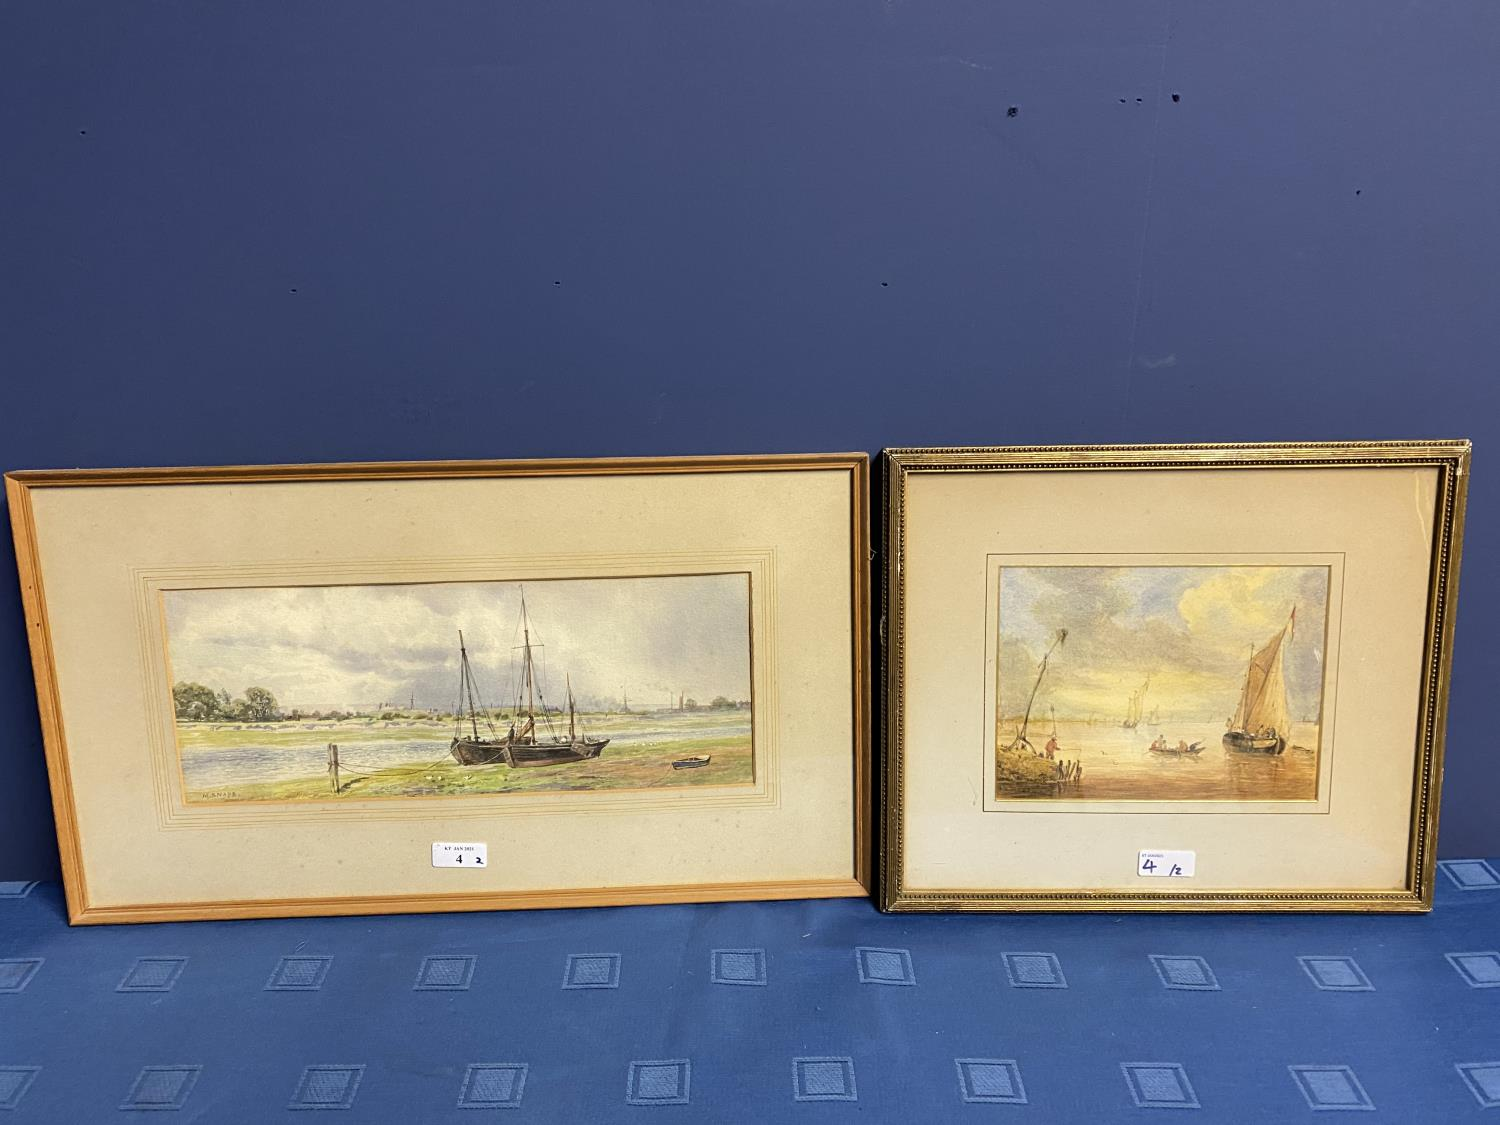 C19th watercolour, two fishing boats moored in an Estuary, signed M Snape, 14 x 37cm (condition, - Image 10 of 10